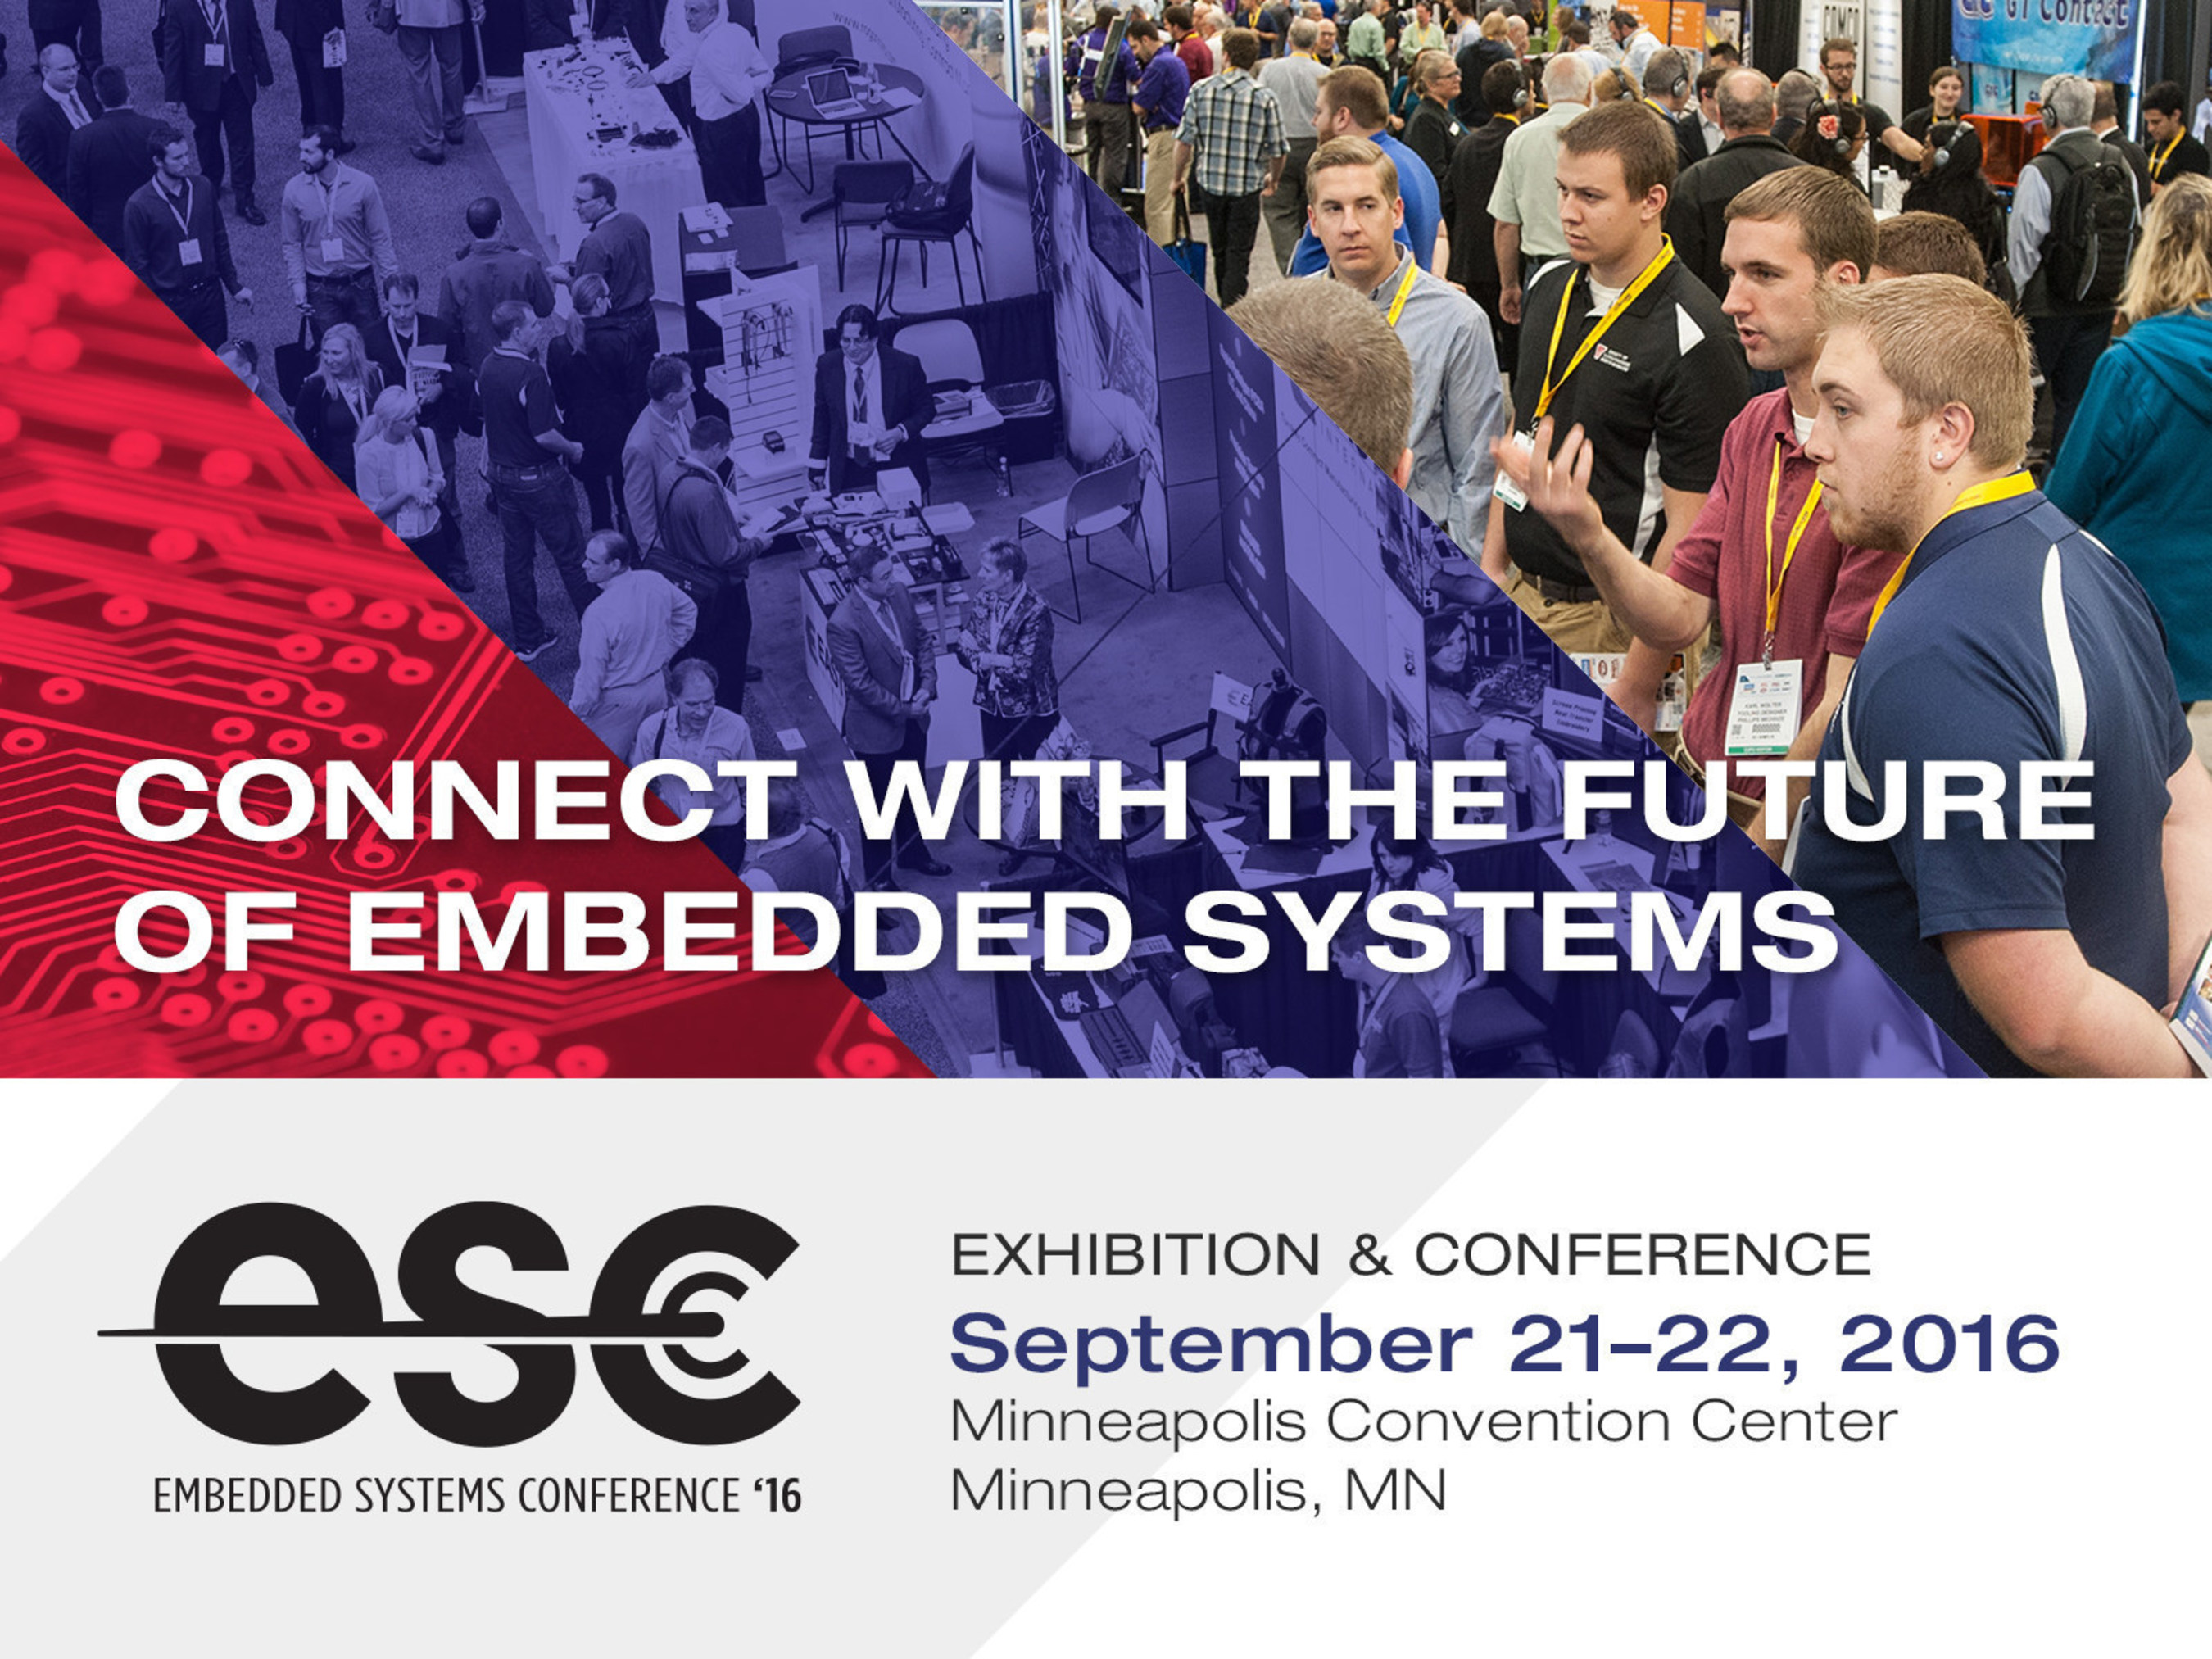 Embedded Systems Conference (ESC) Minneapolis Announces Keynote Speakers Chuck Carter, Founder of Eagre Games, and Renowned Technology Author George Leopold